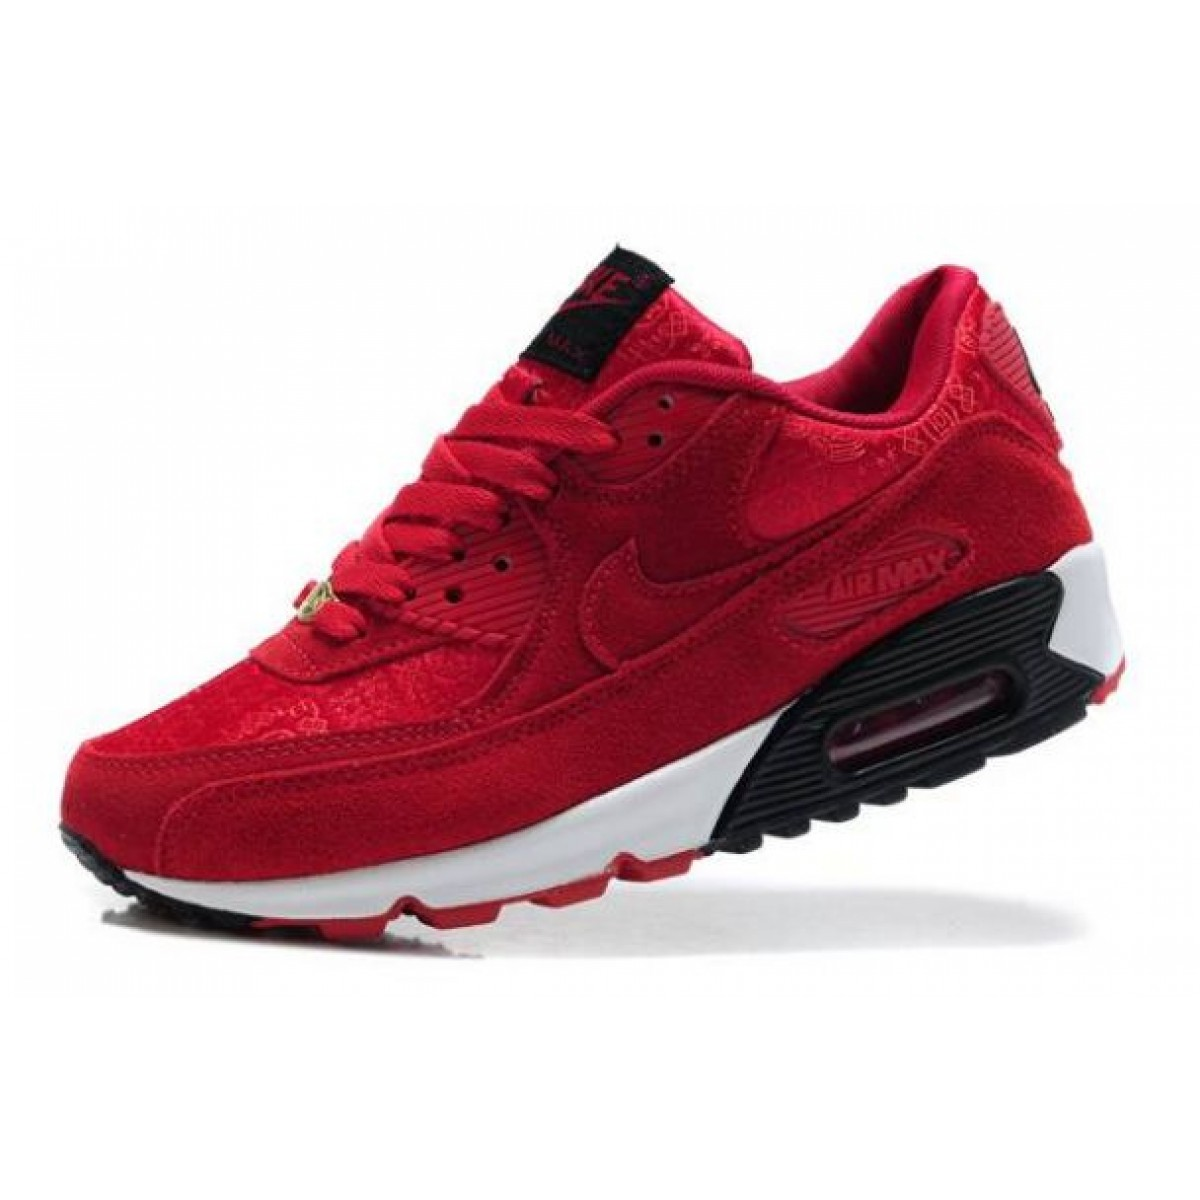 nike air max 90 homme rouge et blanc